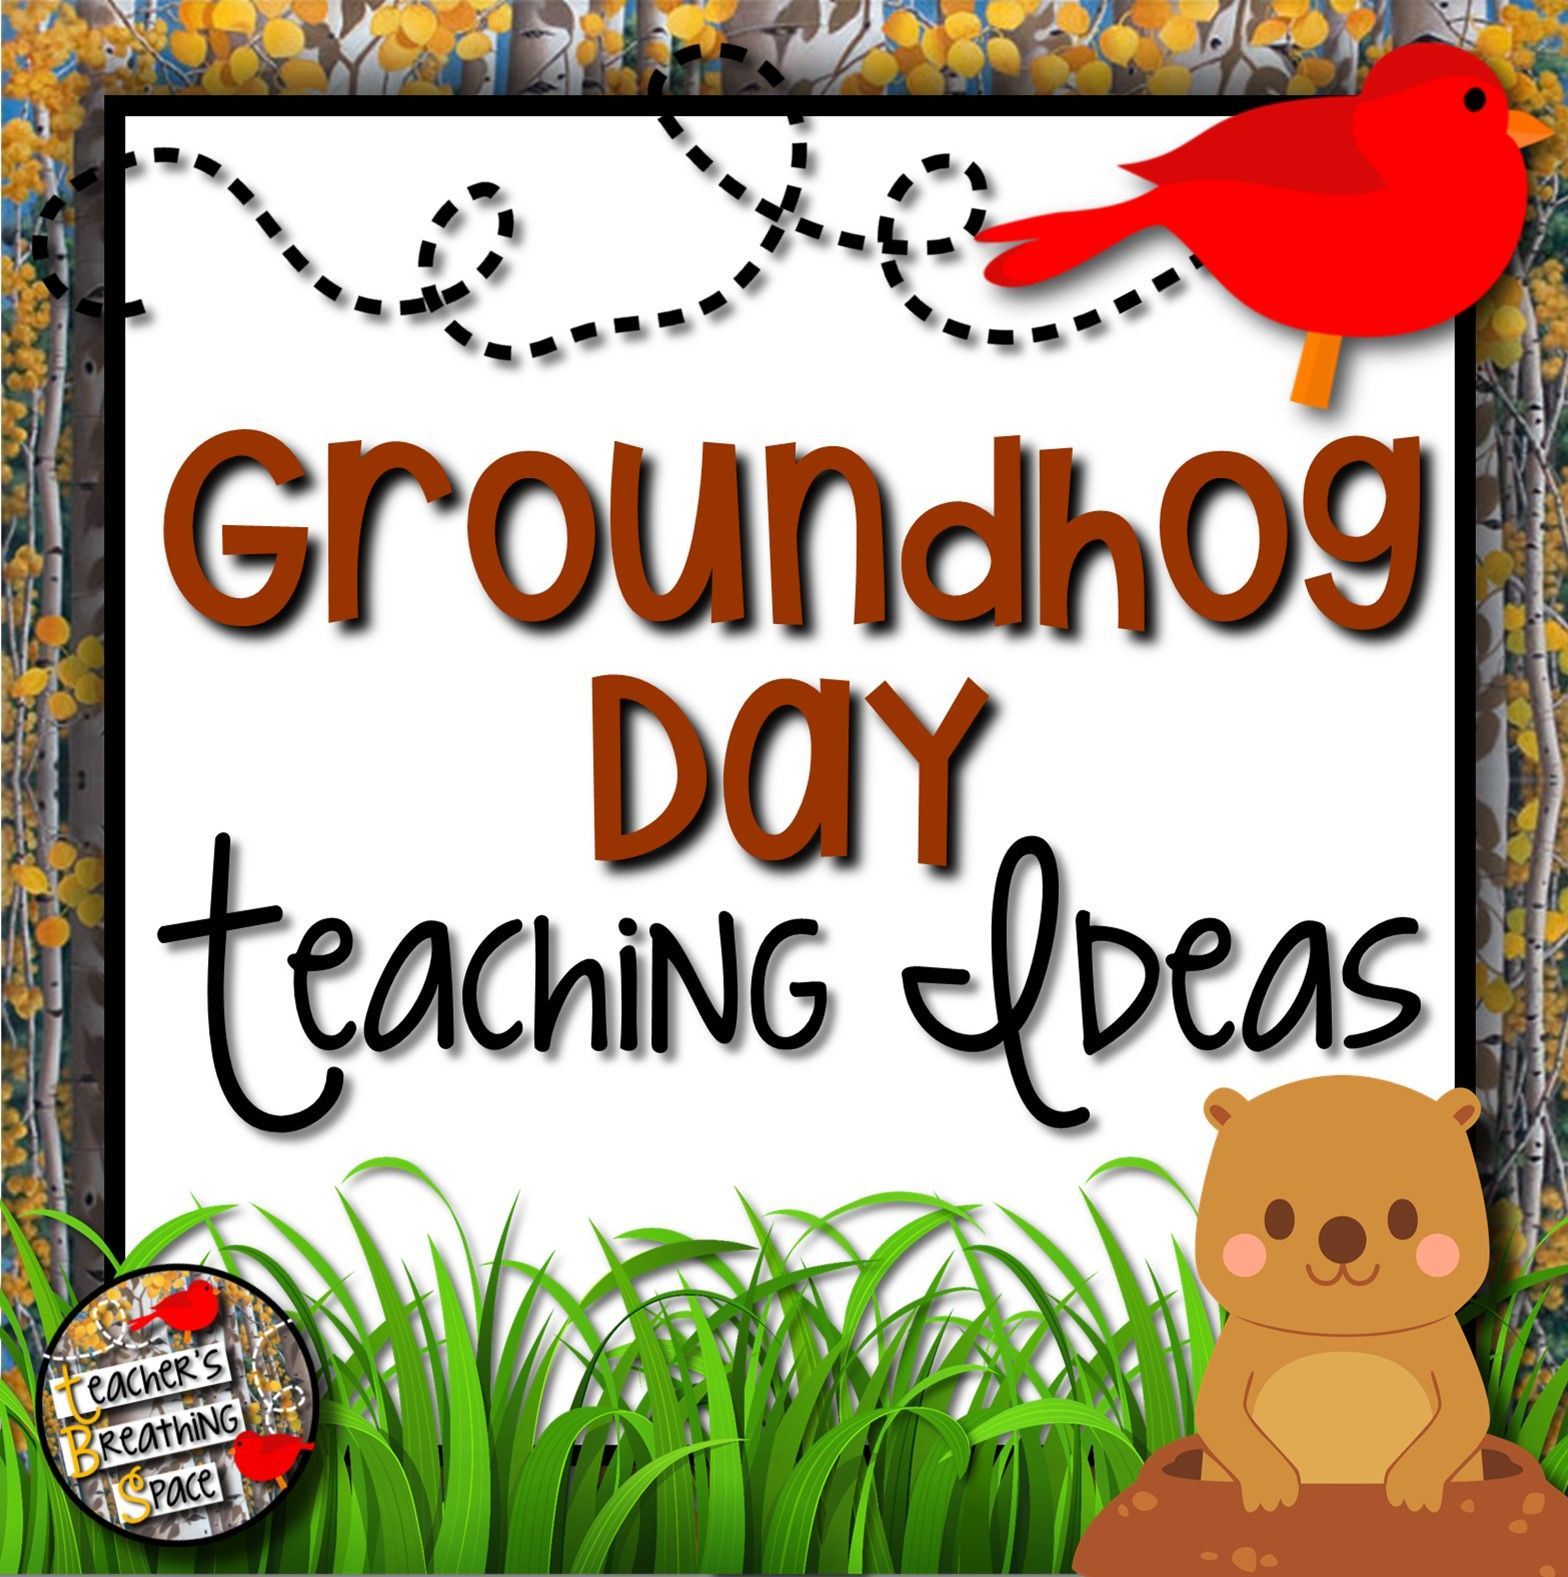 Pin By Teacher S Breathing Space On Groundhog Day Teaching